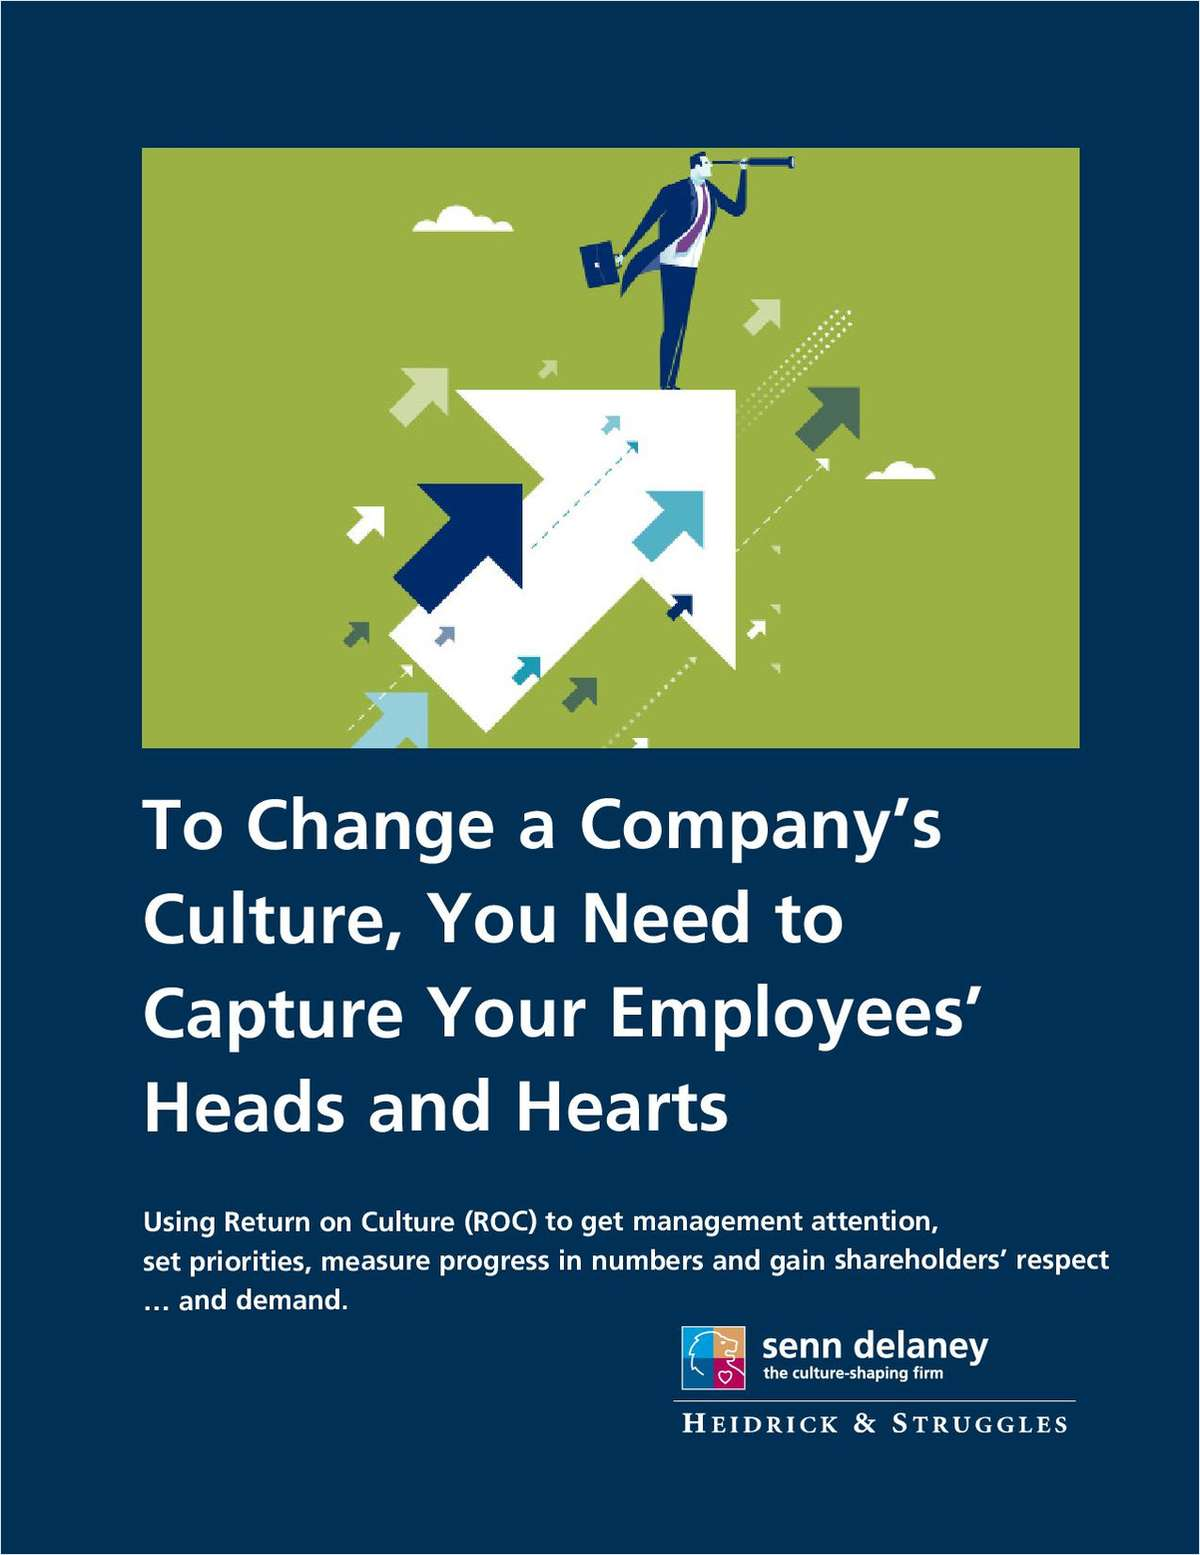 To Change a Company's Culture, You Need to Capture Your Employees' Heads and Hearts